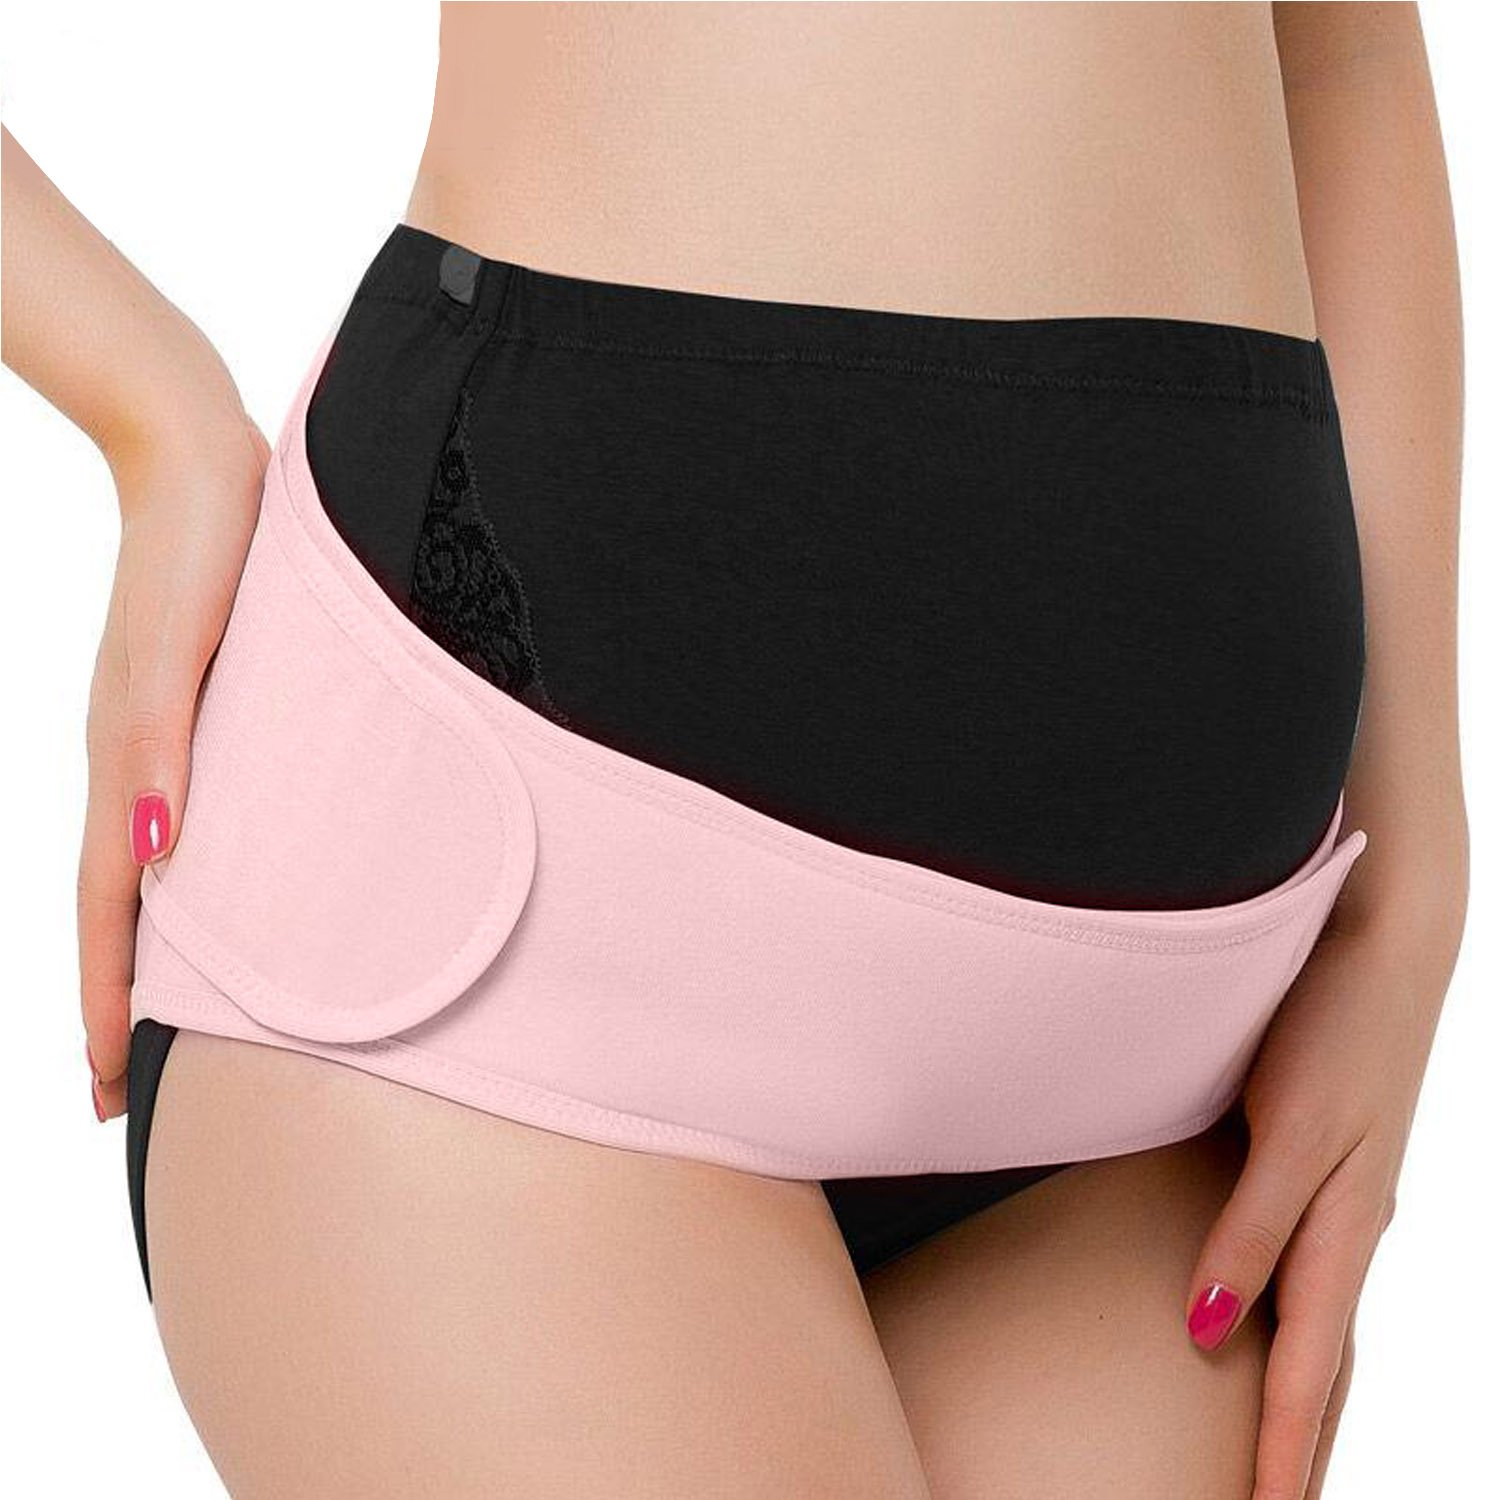 Tirain Maternity Belt Pregnancy Belly Band Breathable Abdominal Binder Adjustable Back Support Belt One size, Pink Pelvic Support Suitable for Prenatal and Postpartum Recovery